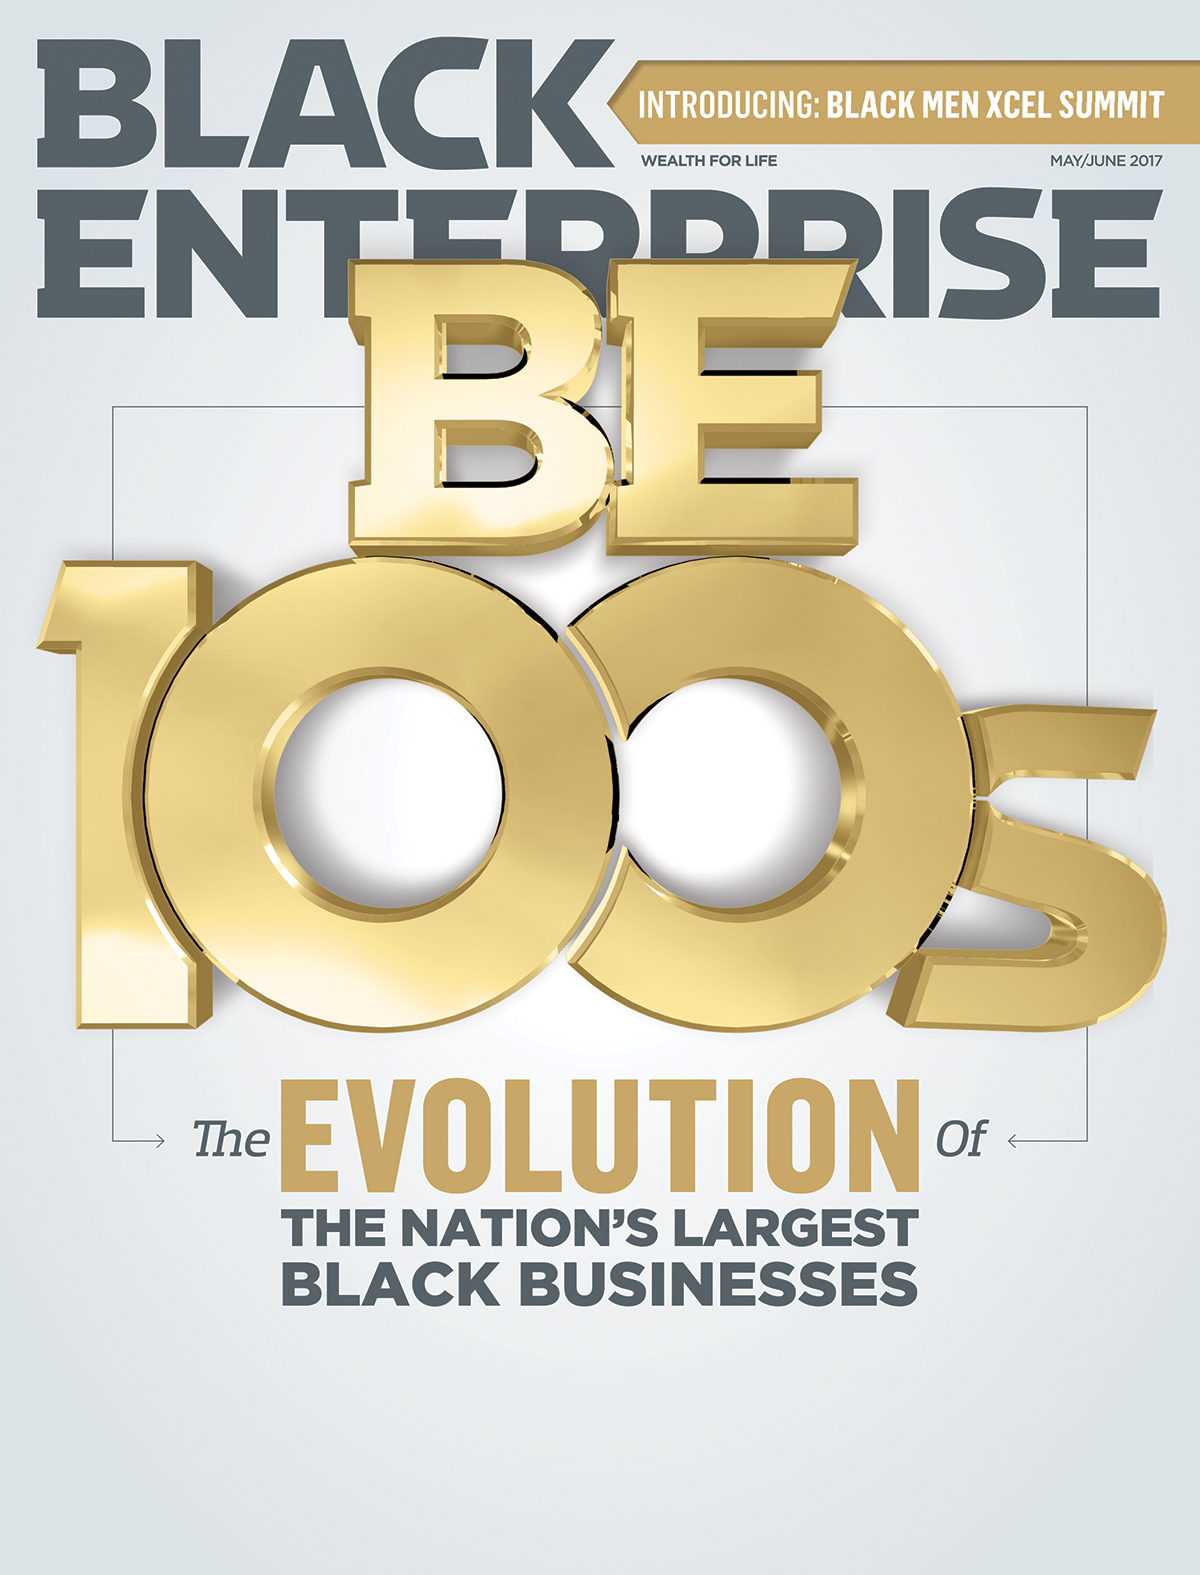 Black Enterprise magazine May/June 2017 issue